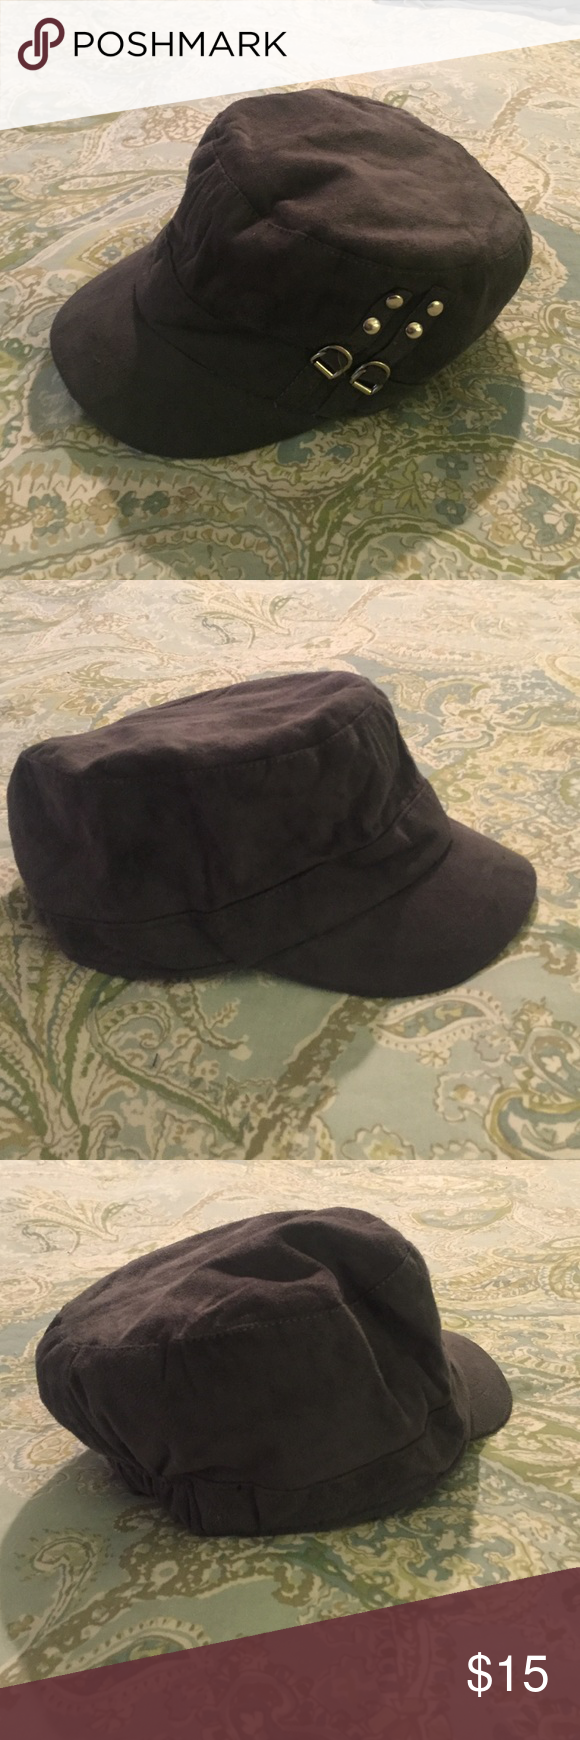 Adorable Gray Hat w/ Silver Buckles Adorable velvety soft gray hat w/ silver buckles - 100% polyester. Purchased at a boutique, brand inside says D&Y. Like new!! Urban Outfitters Accessories Hats